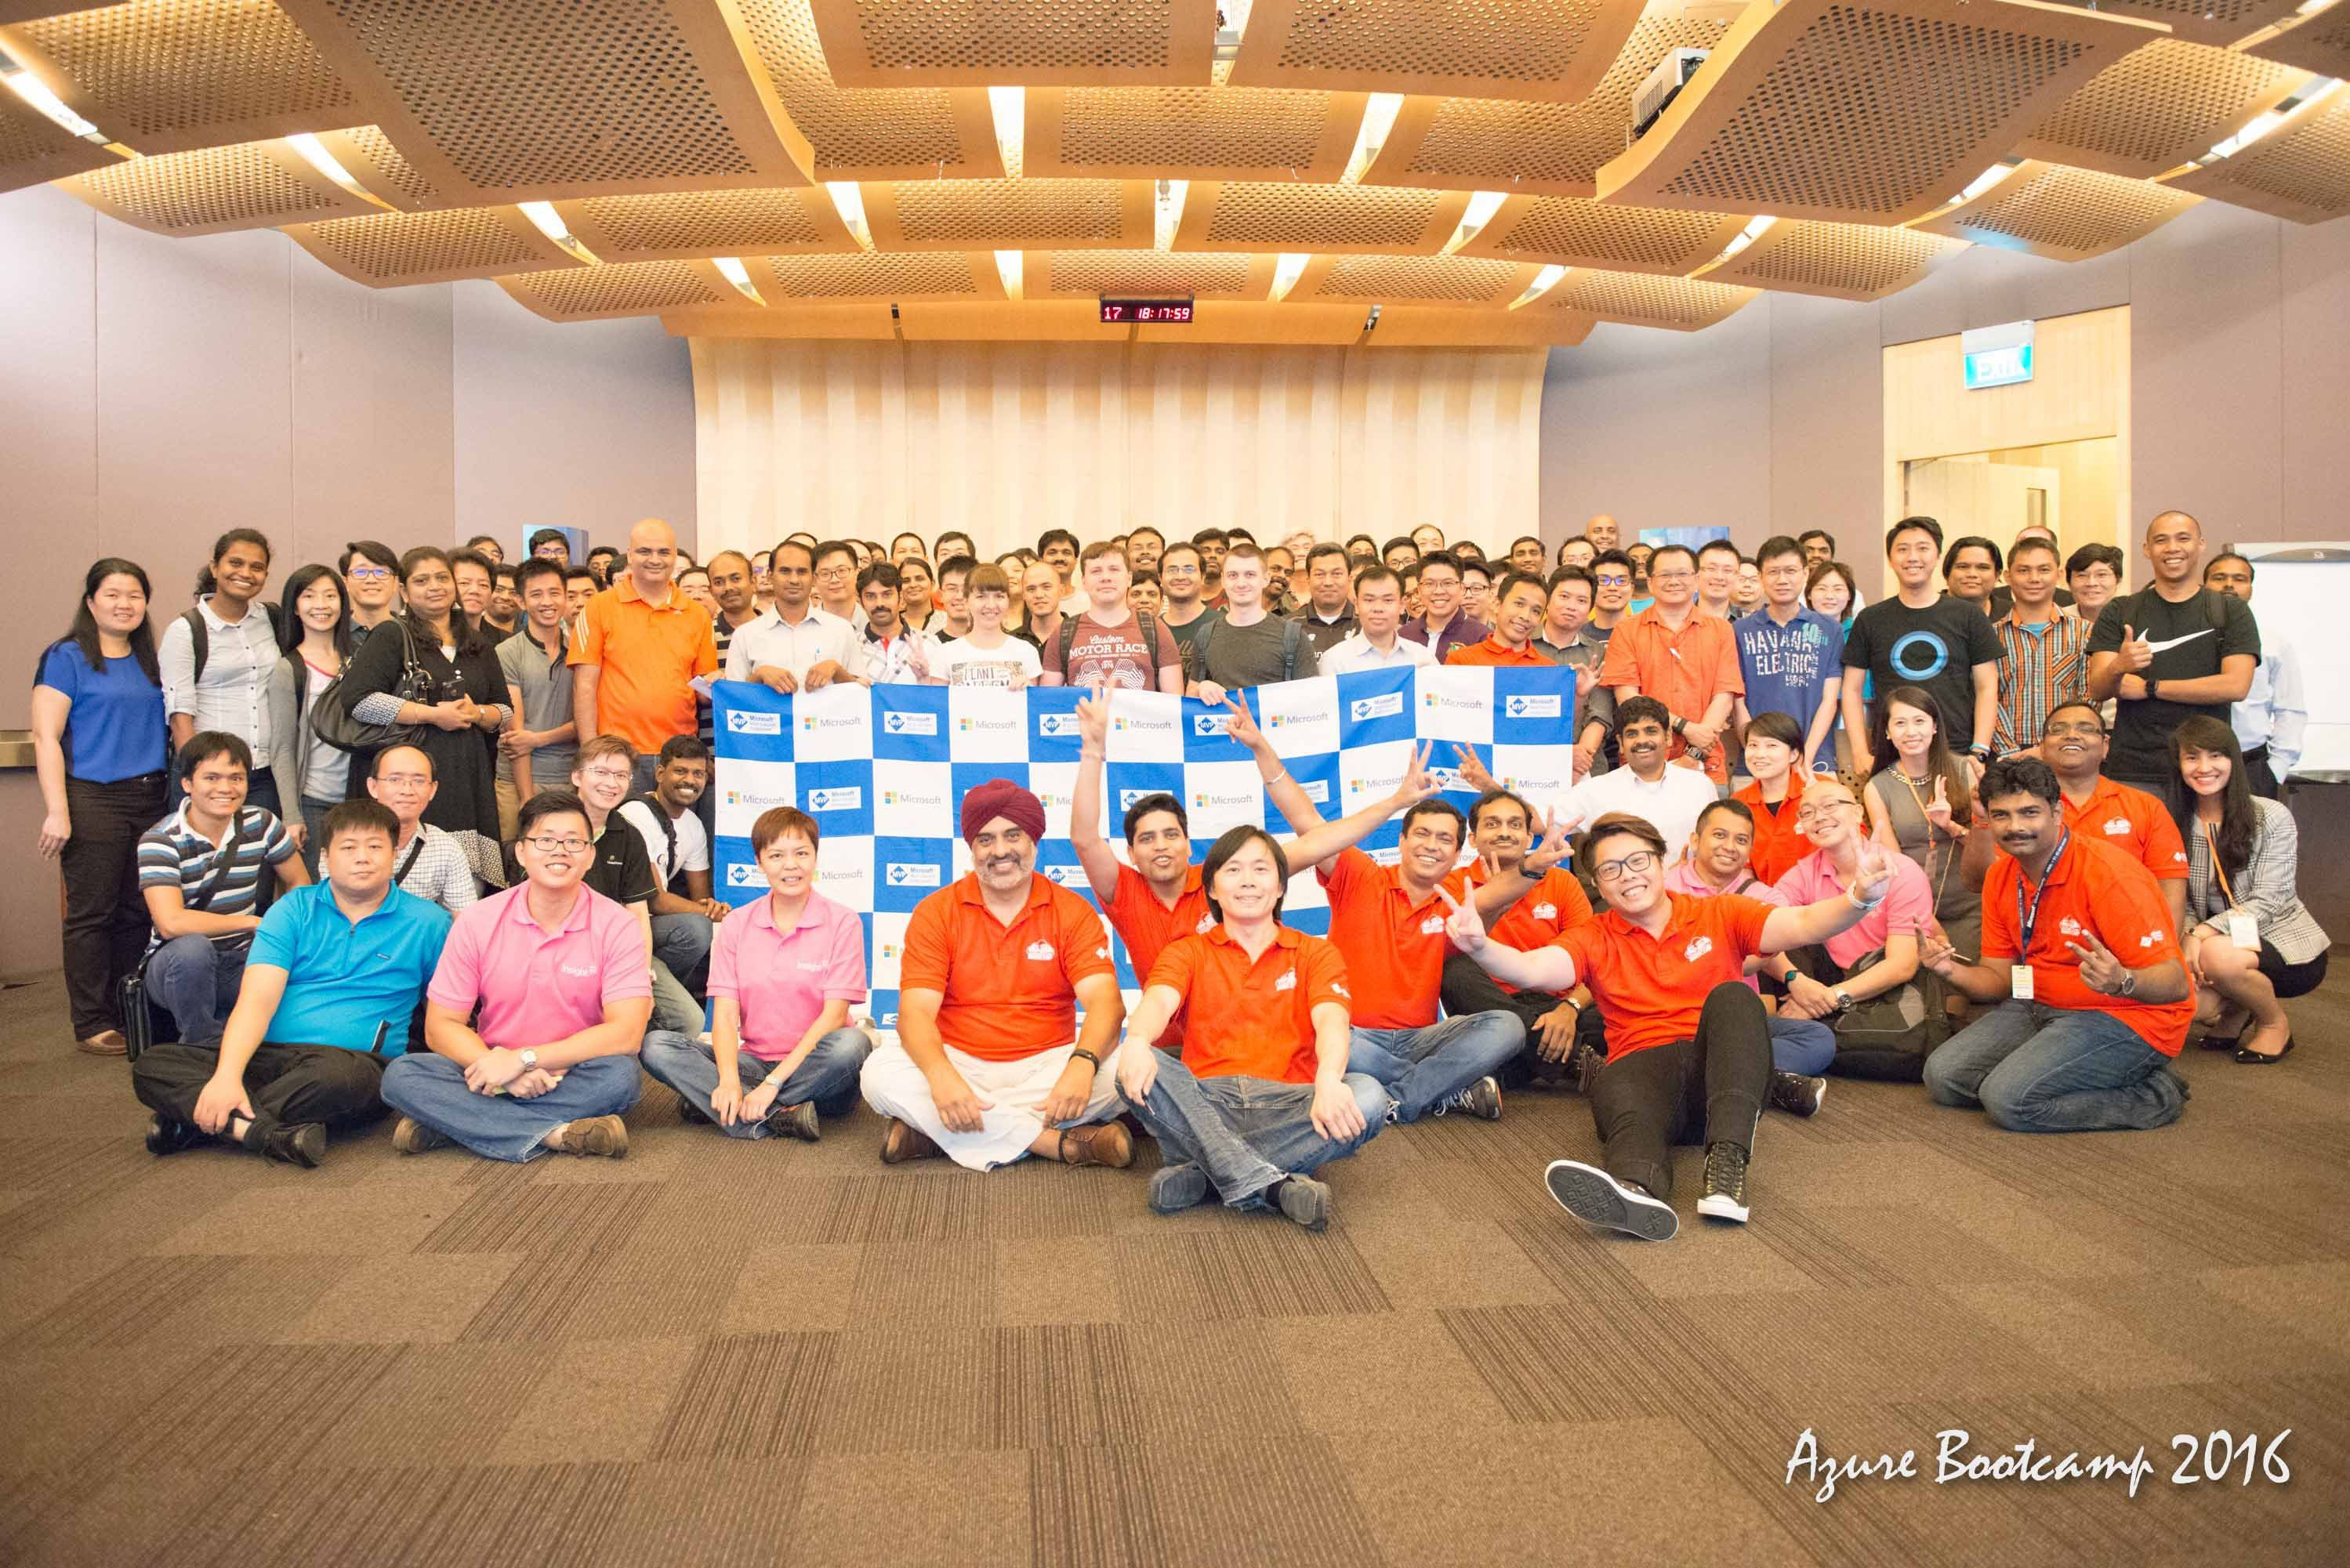 Azure, Office and Data Community (Singapore)